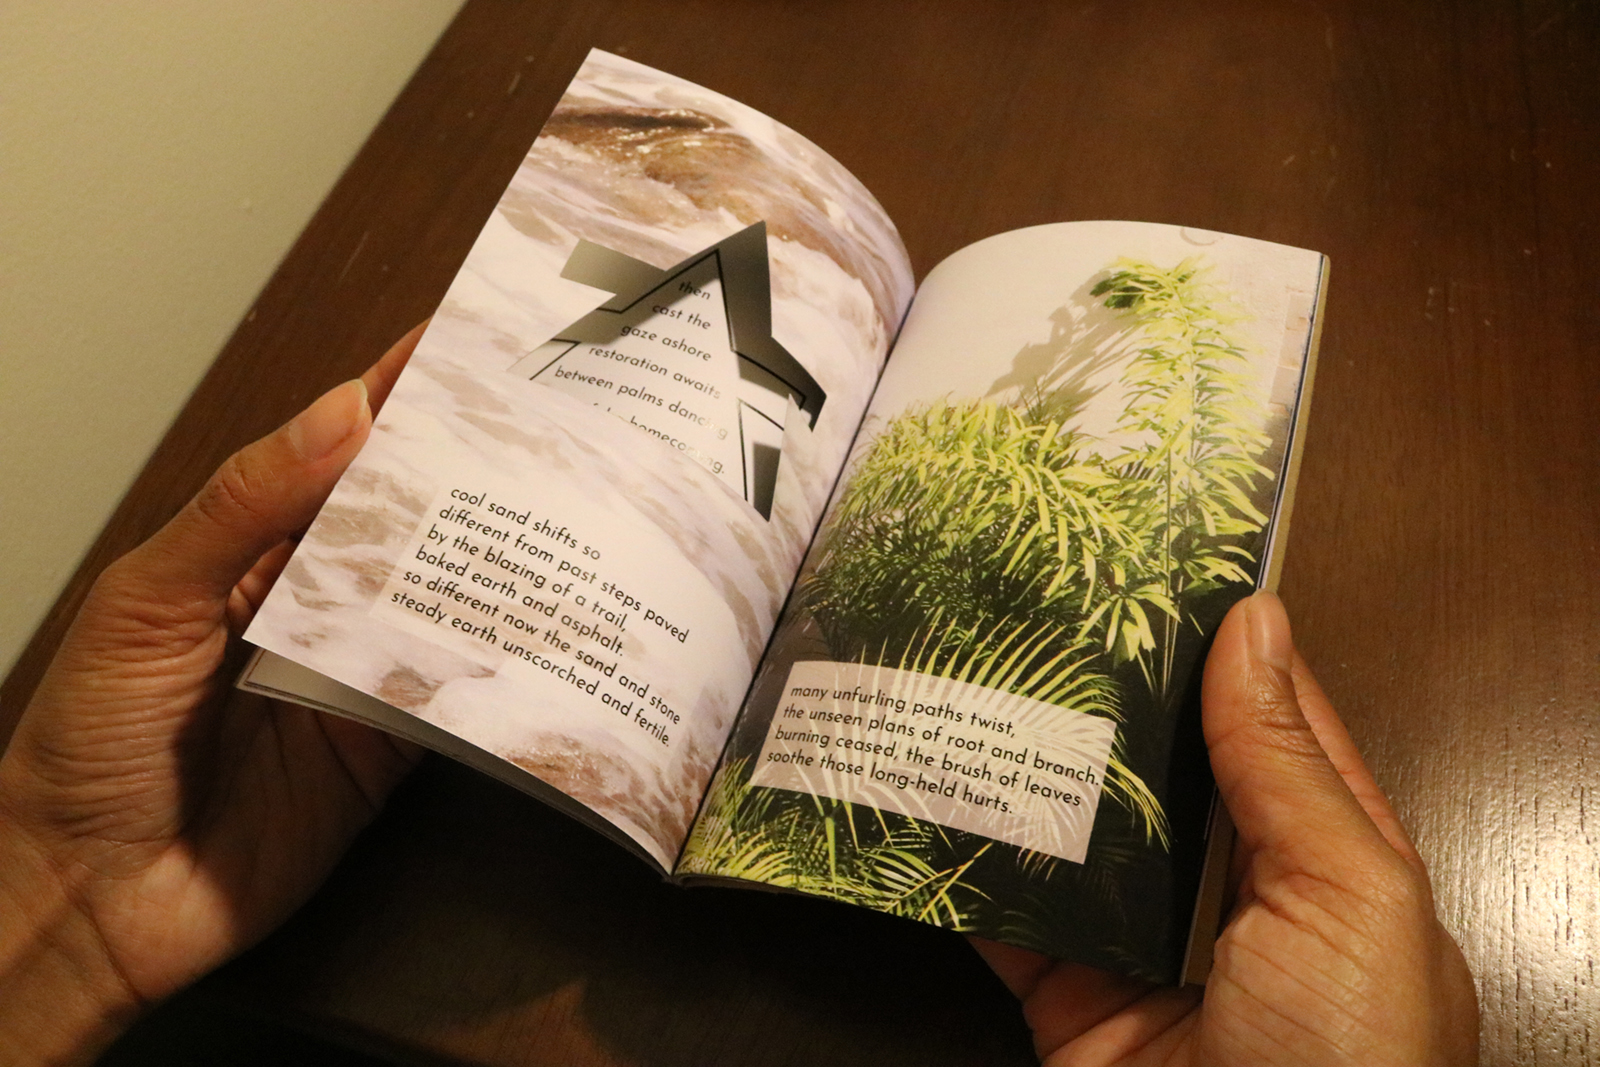 The seventh spread of Restoration. The left shows the previous page through a cutout. Stanzas are overlaid an image of ferns.